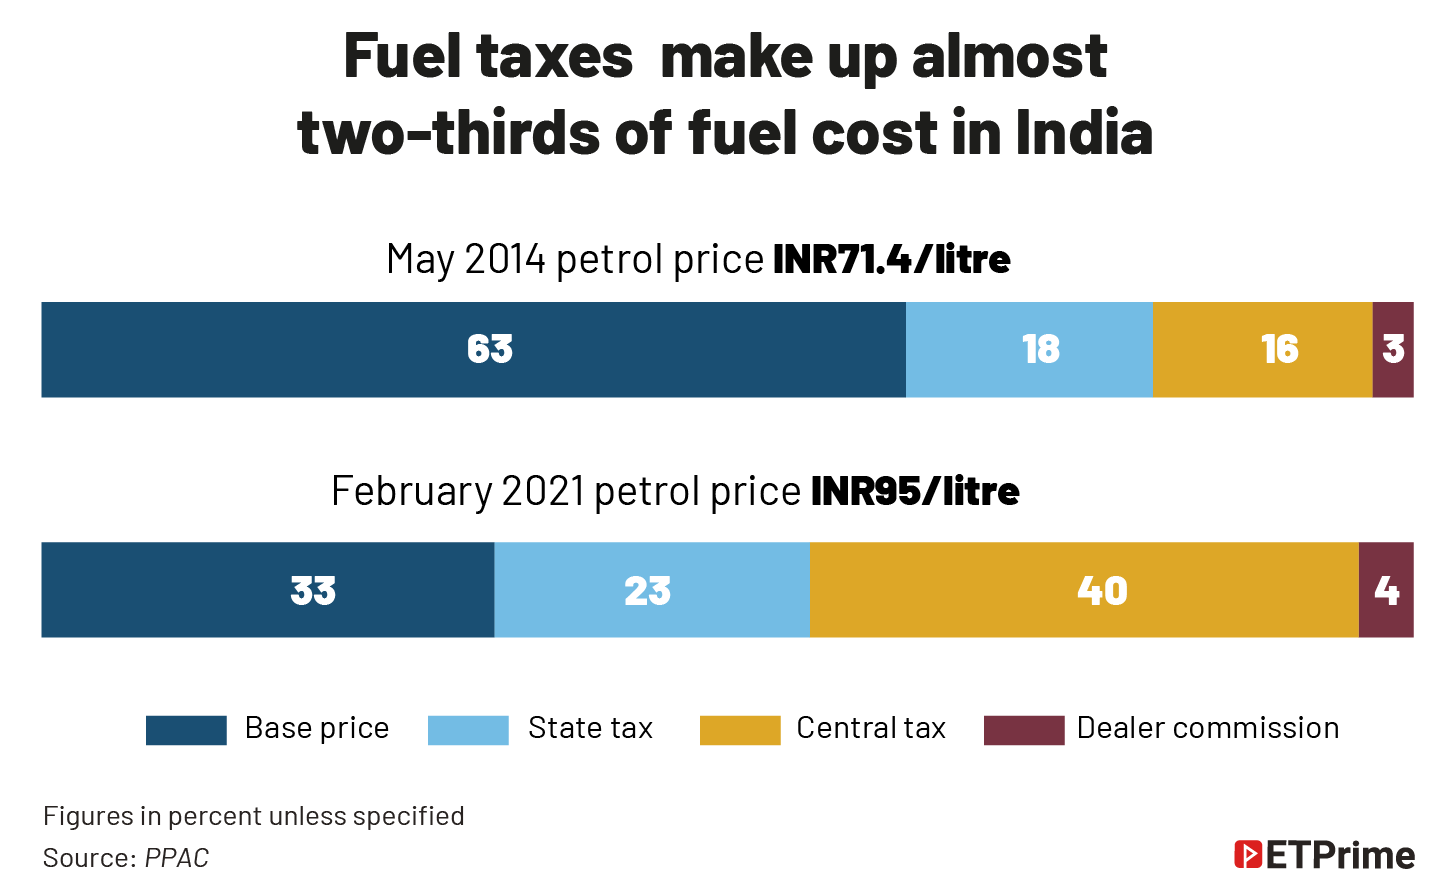 Fuel taxes make up almost _two-thirds of fuel cost in India@2x